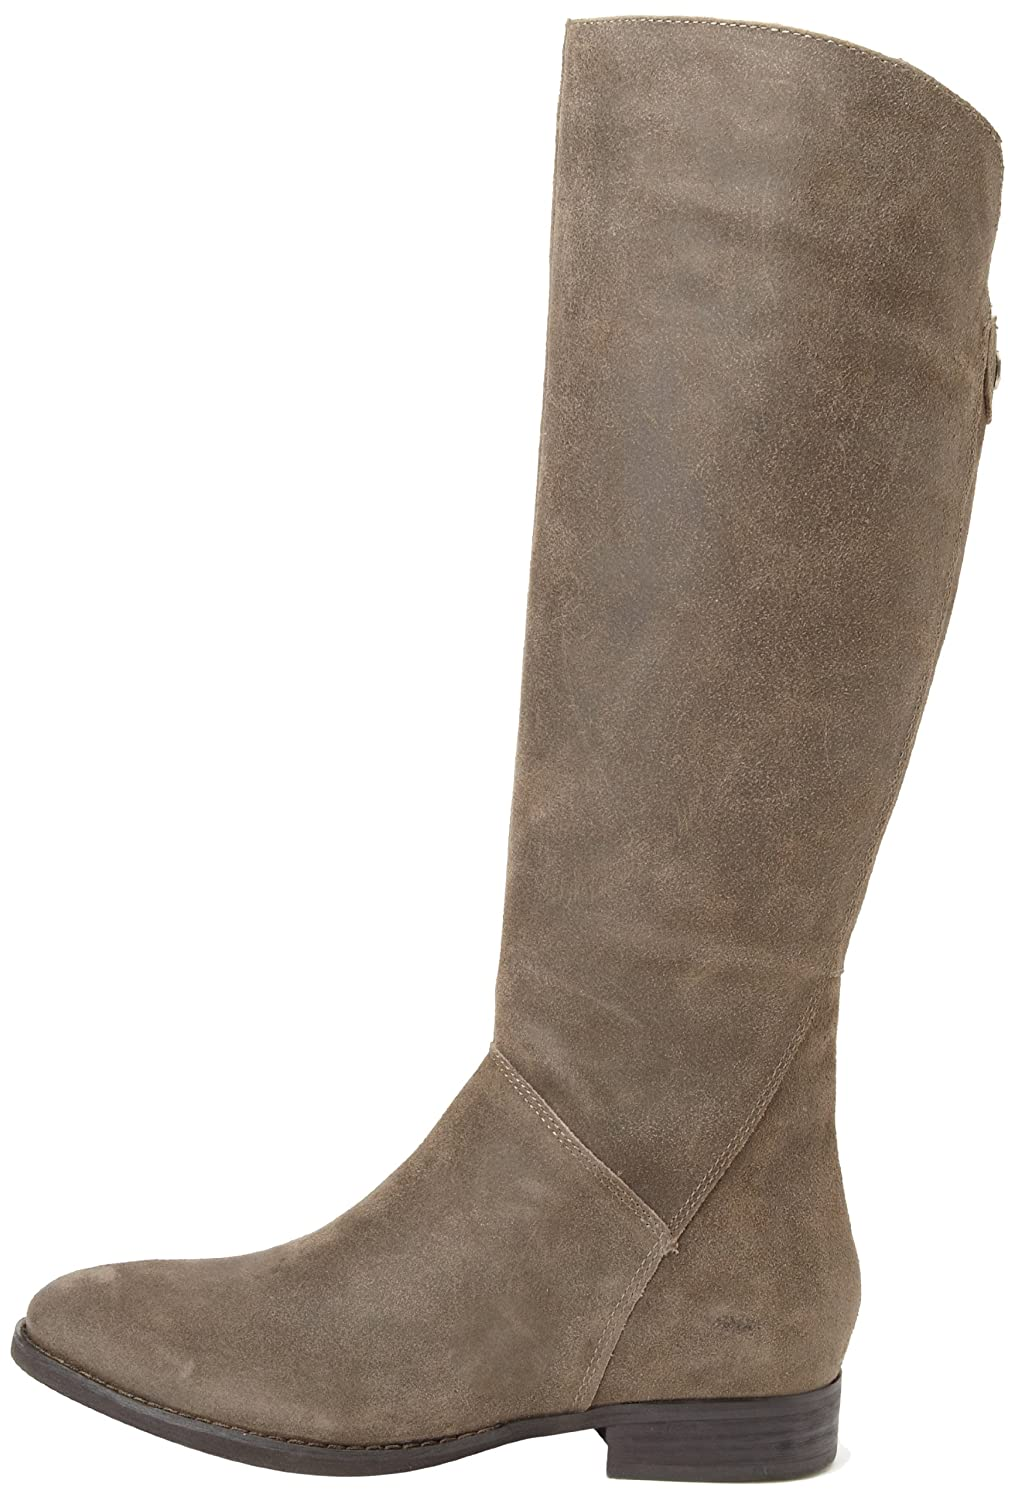 Amazon.com | Ivanka Trump Women's Jenn Motorcycle Boot, Grey, 8 M US |  Knee-High